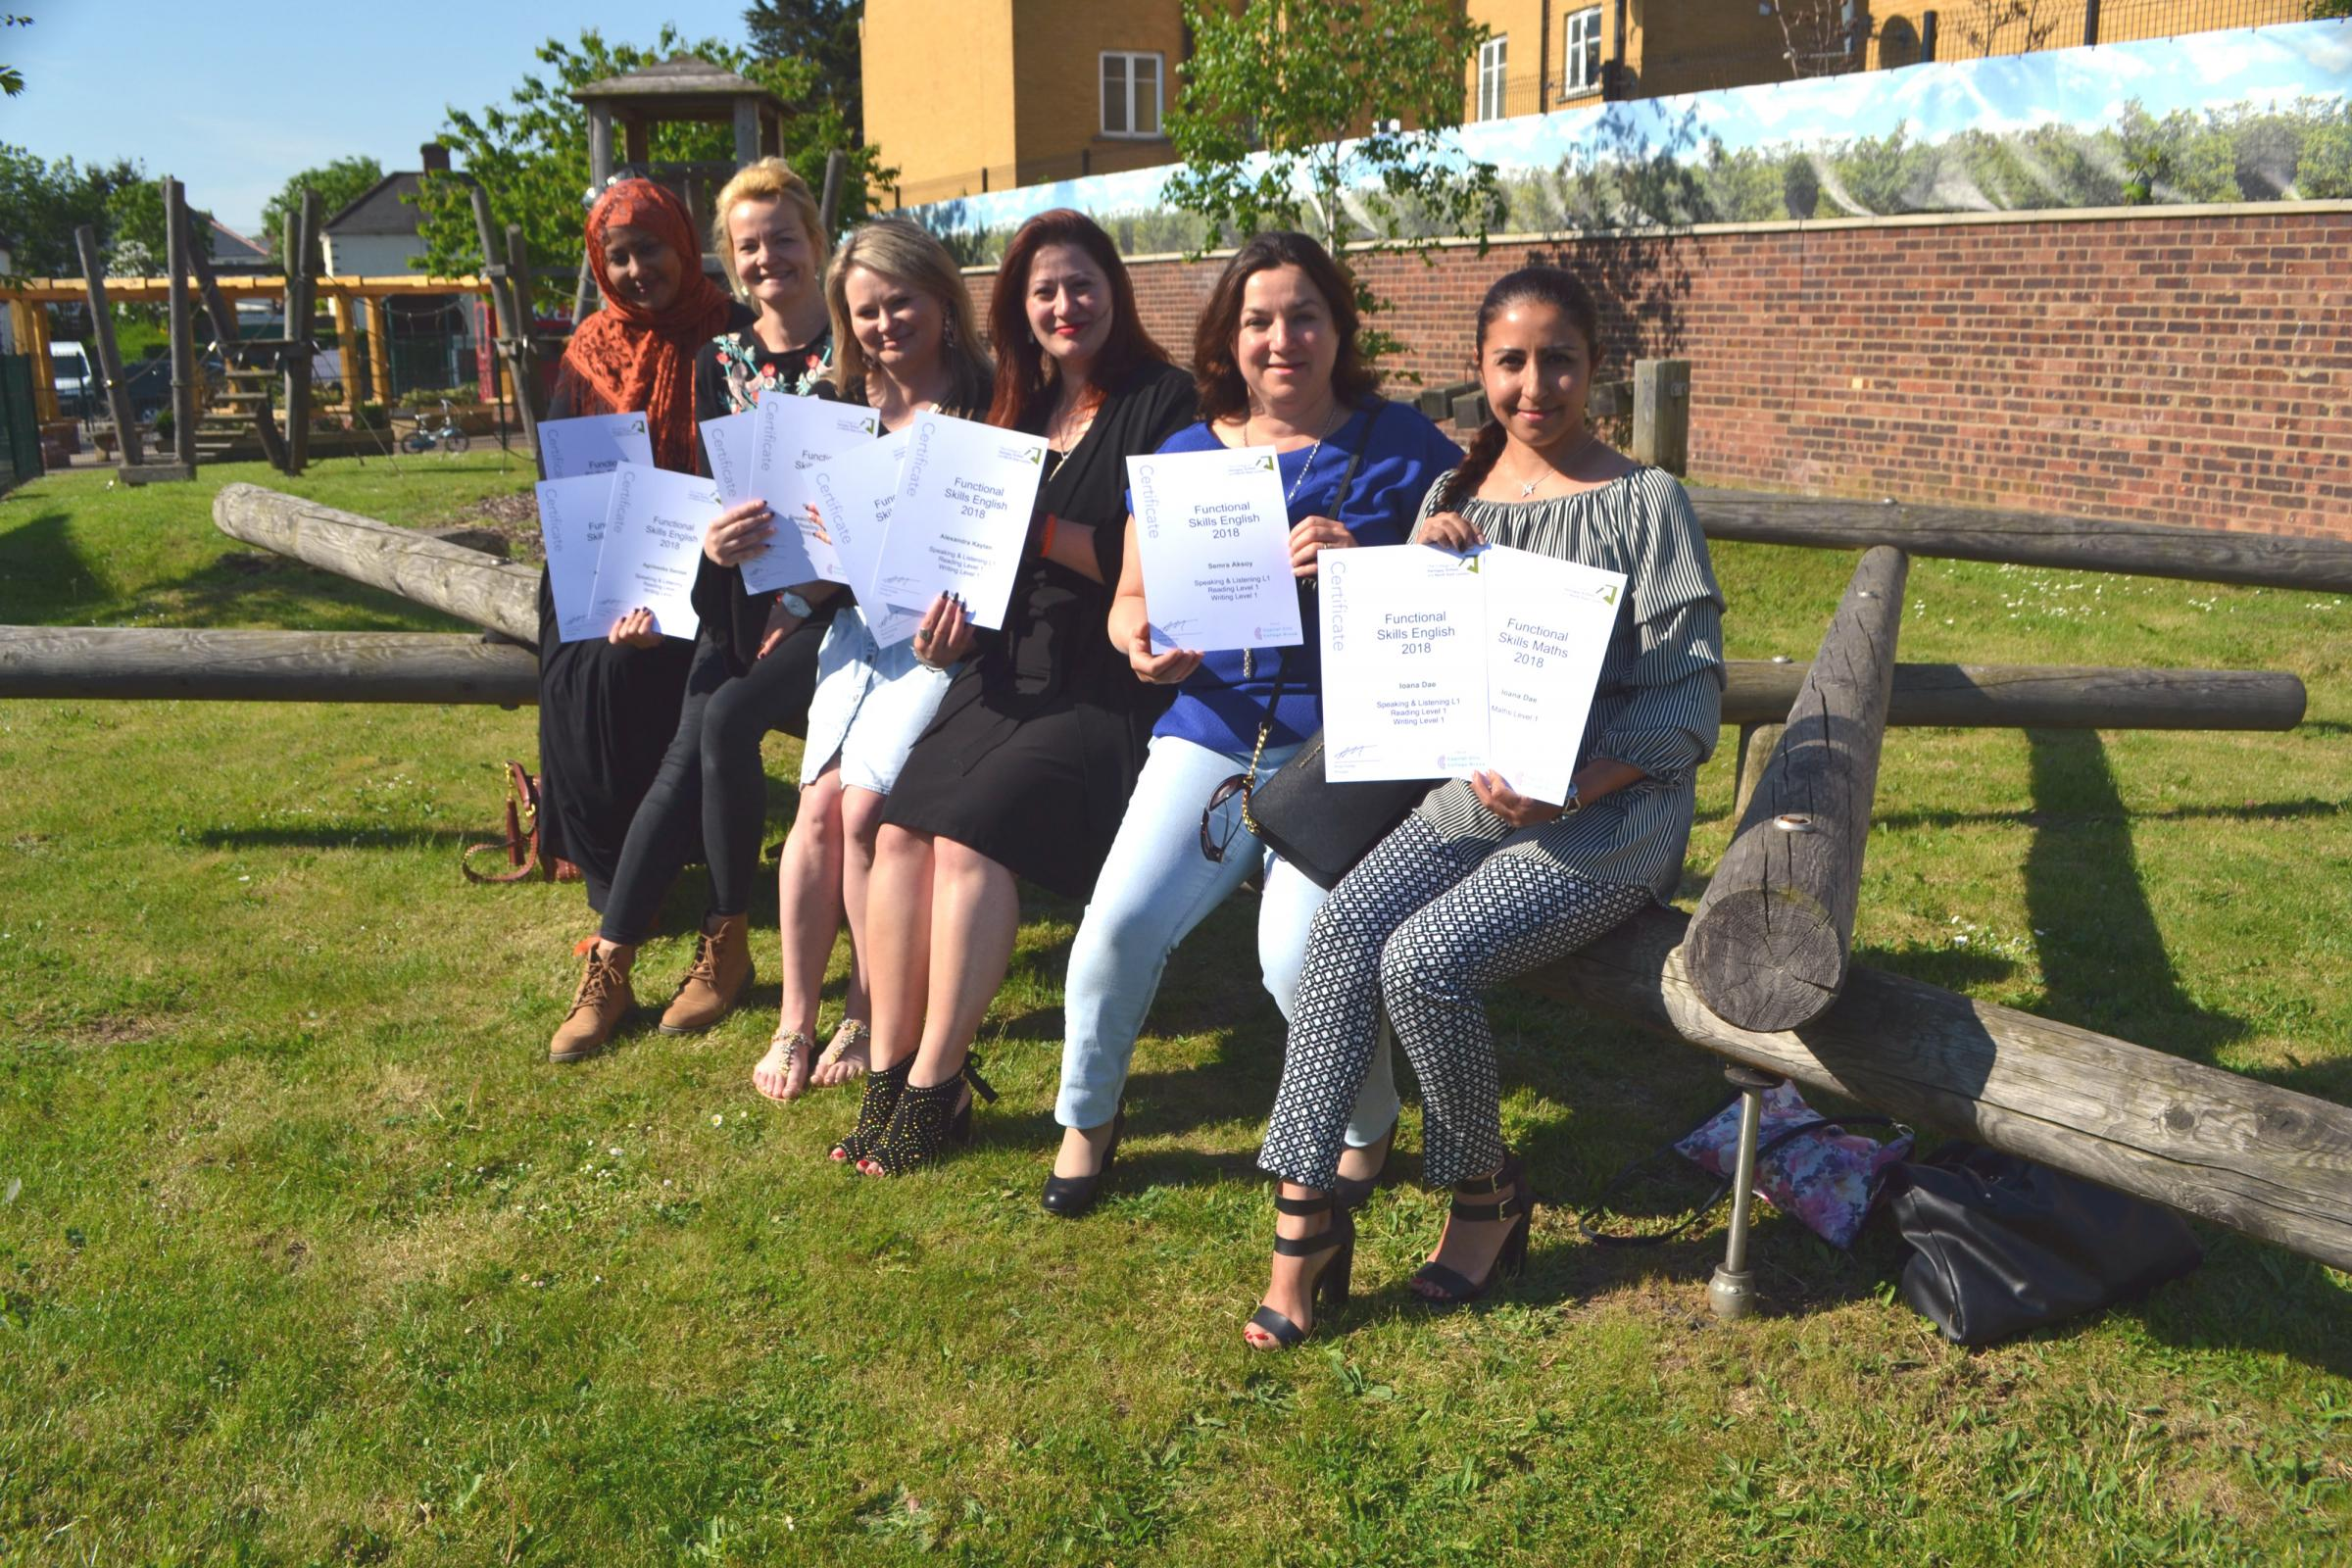 Mums presented with awards at their children's school